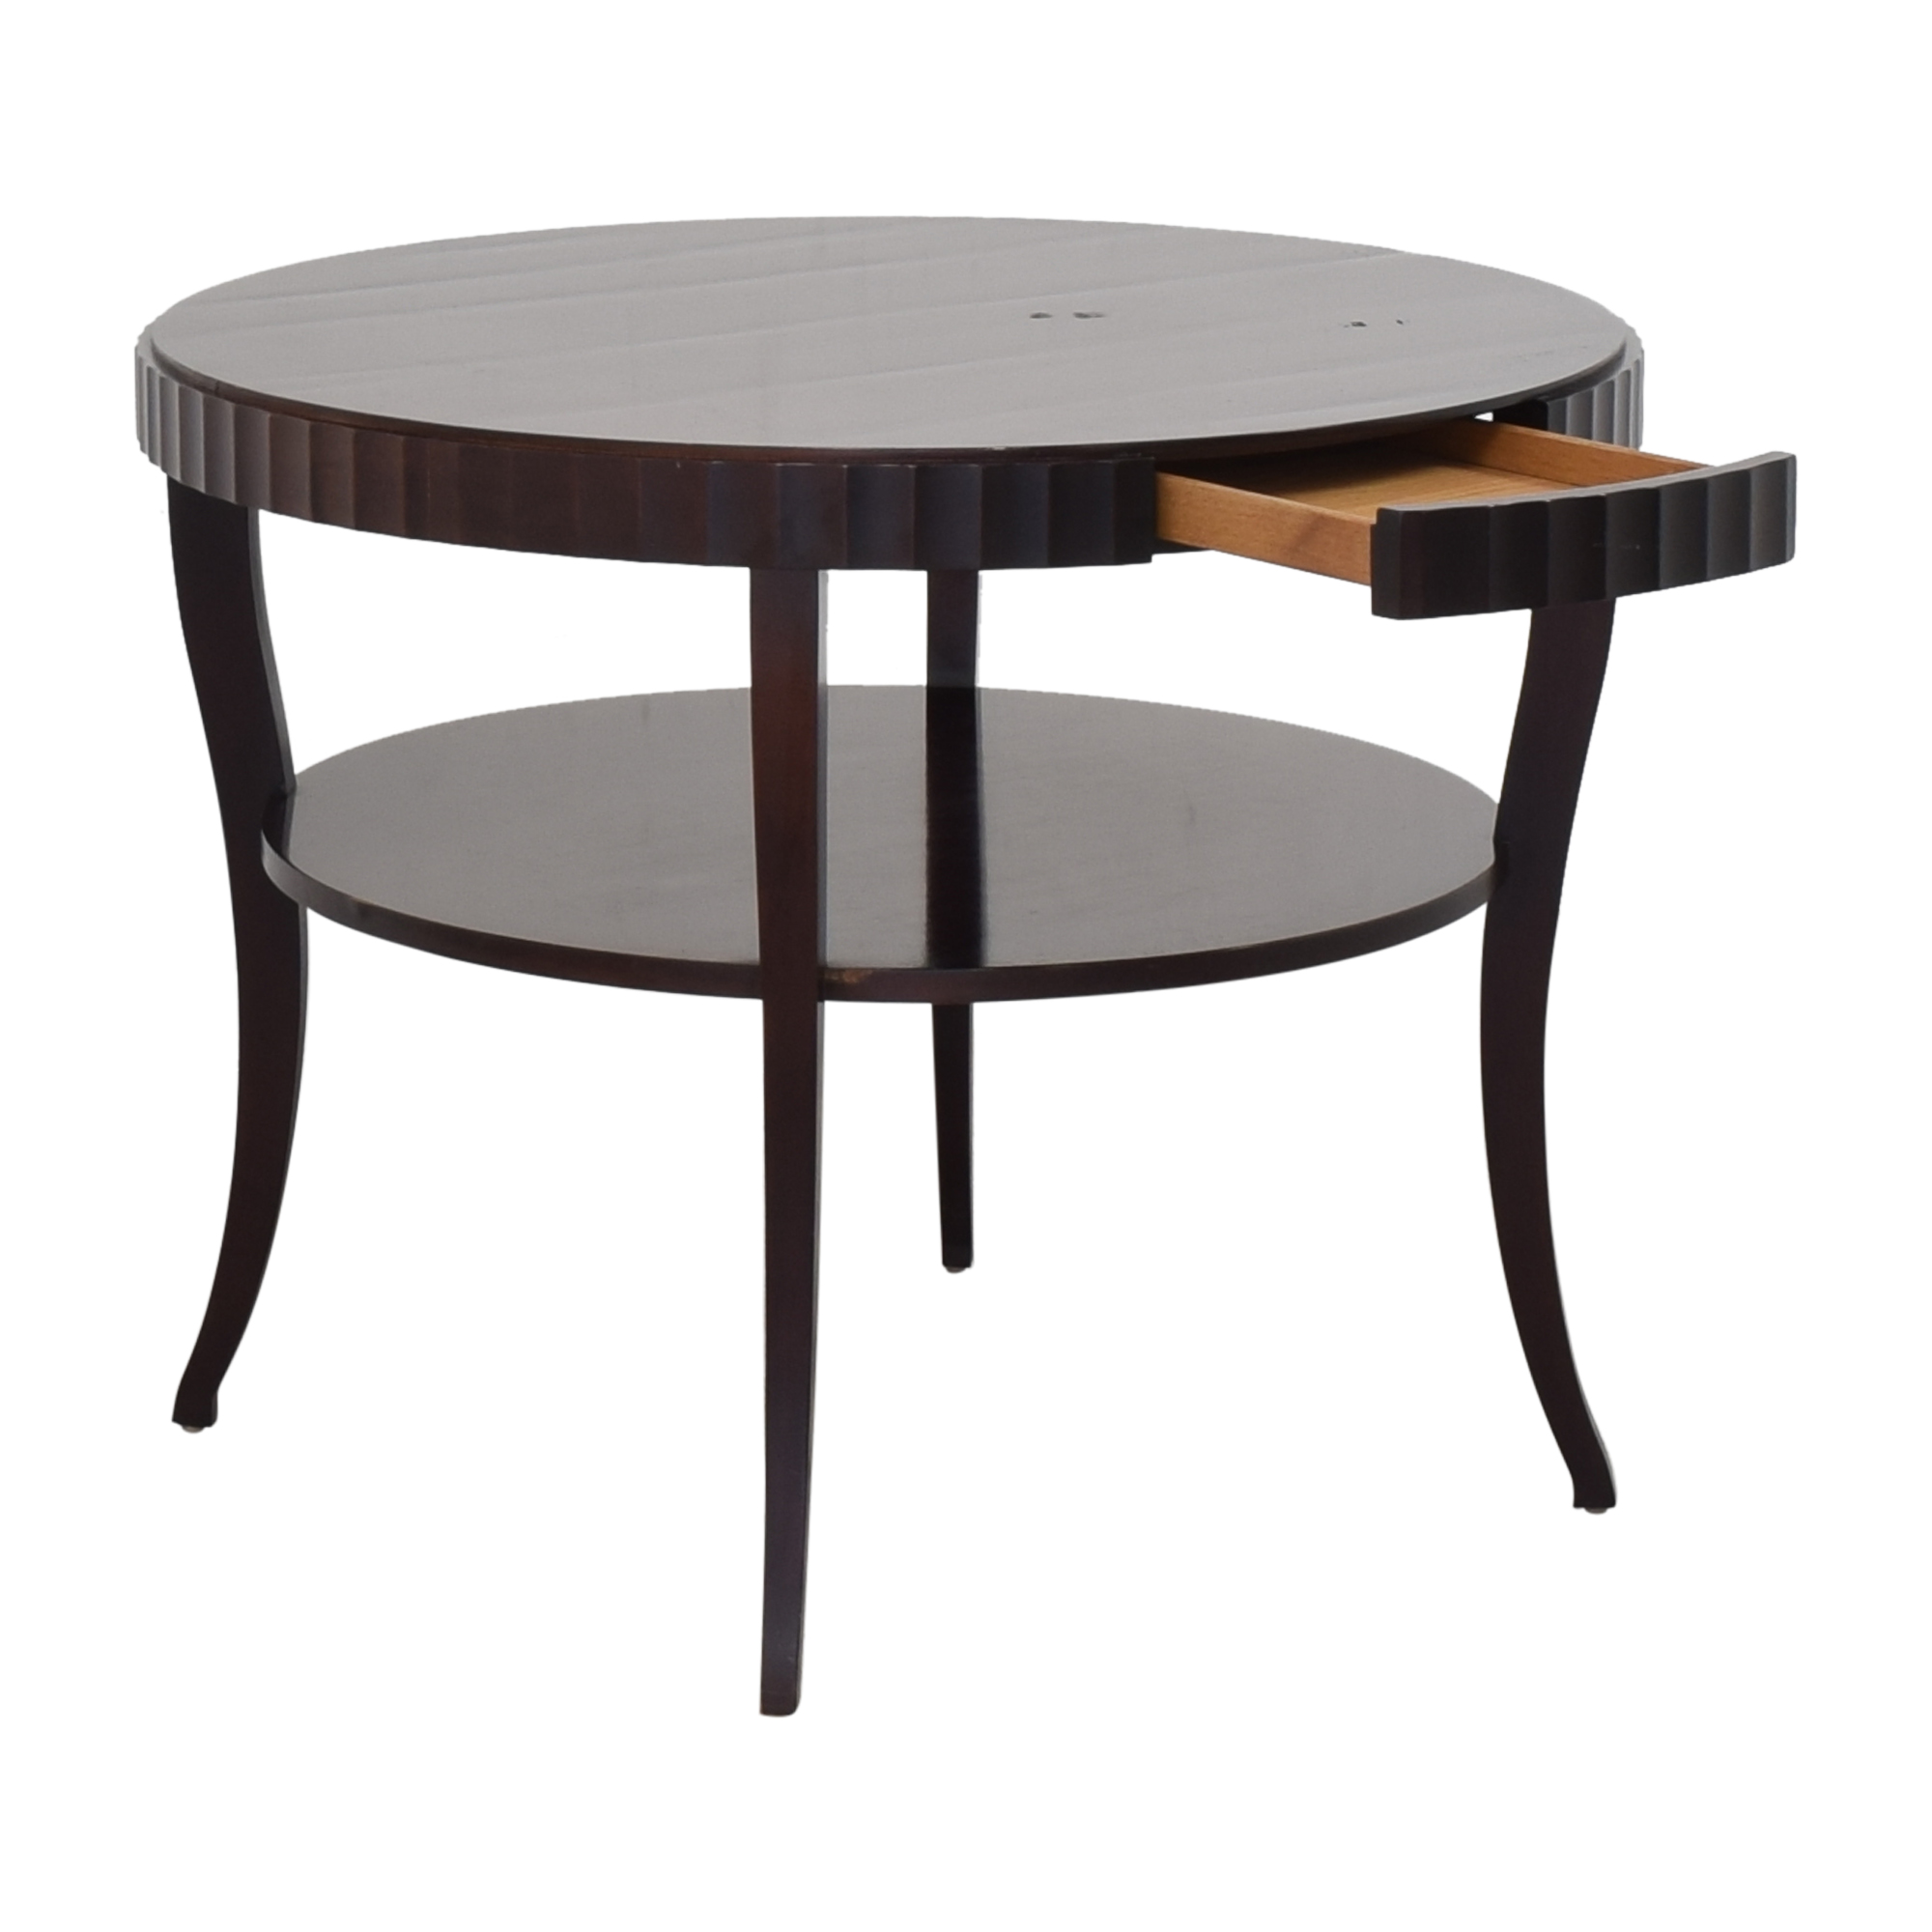 Baker Furniture Baker Furniture Round End Table discount